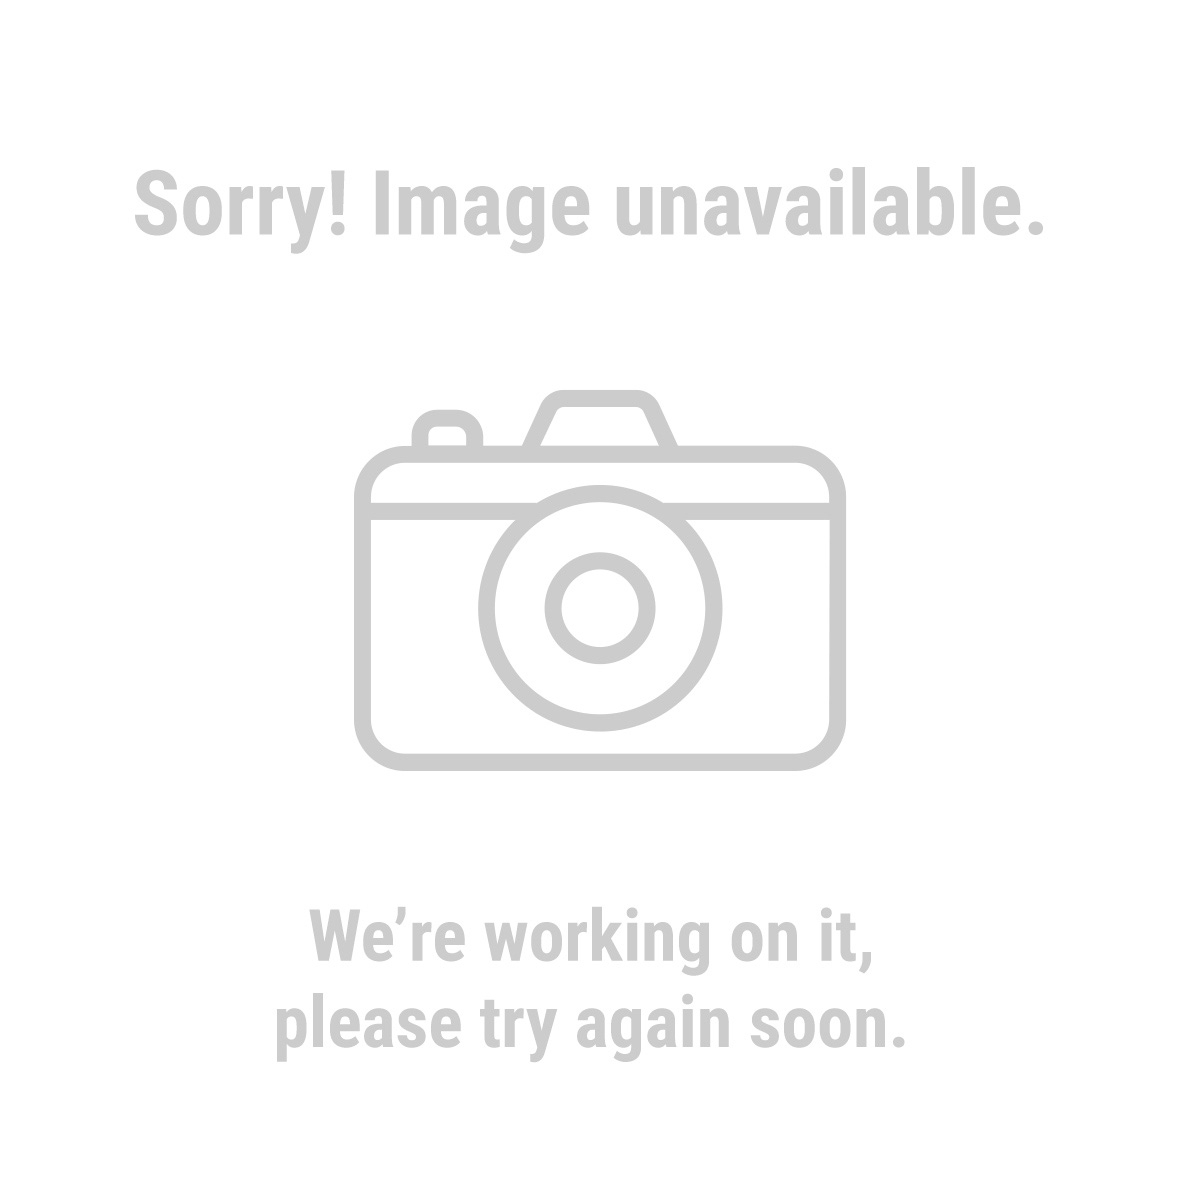 Windsor Design 60655 11 Piece Wood Carving Set